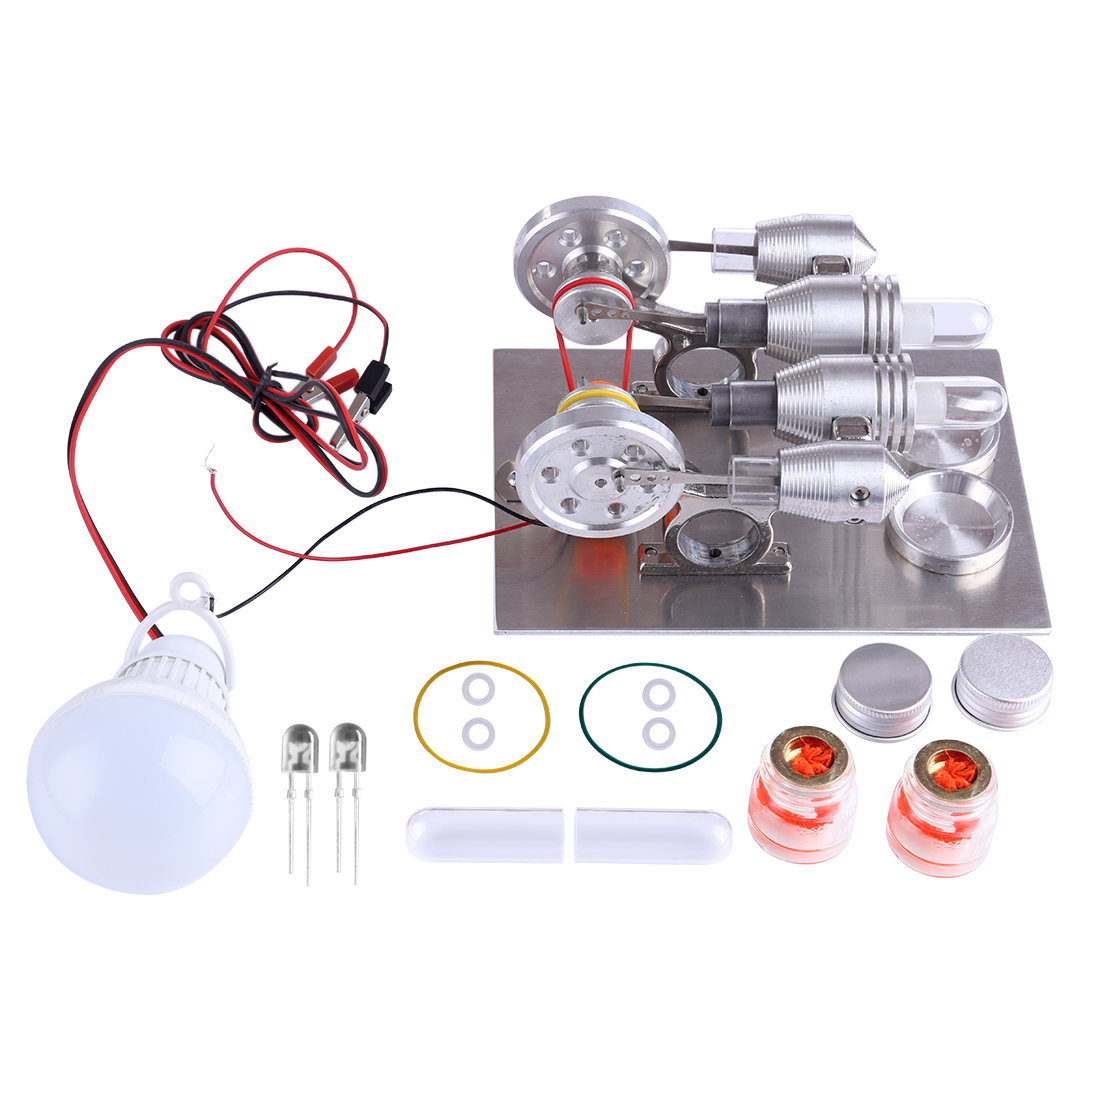 Double Cylinder Stirling Engine Model Kits Physics Science Experiment DIY Model Building Kits Toys For Children